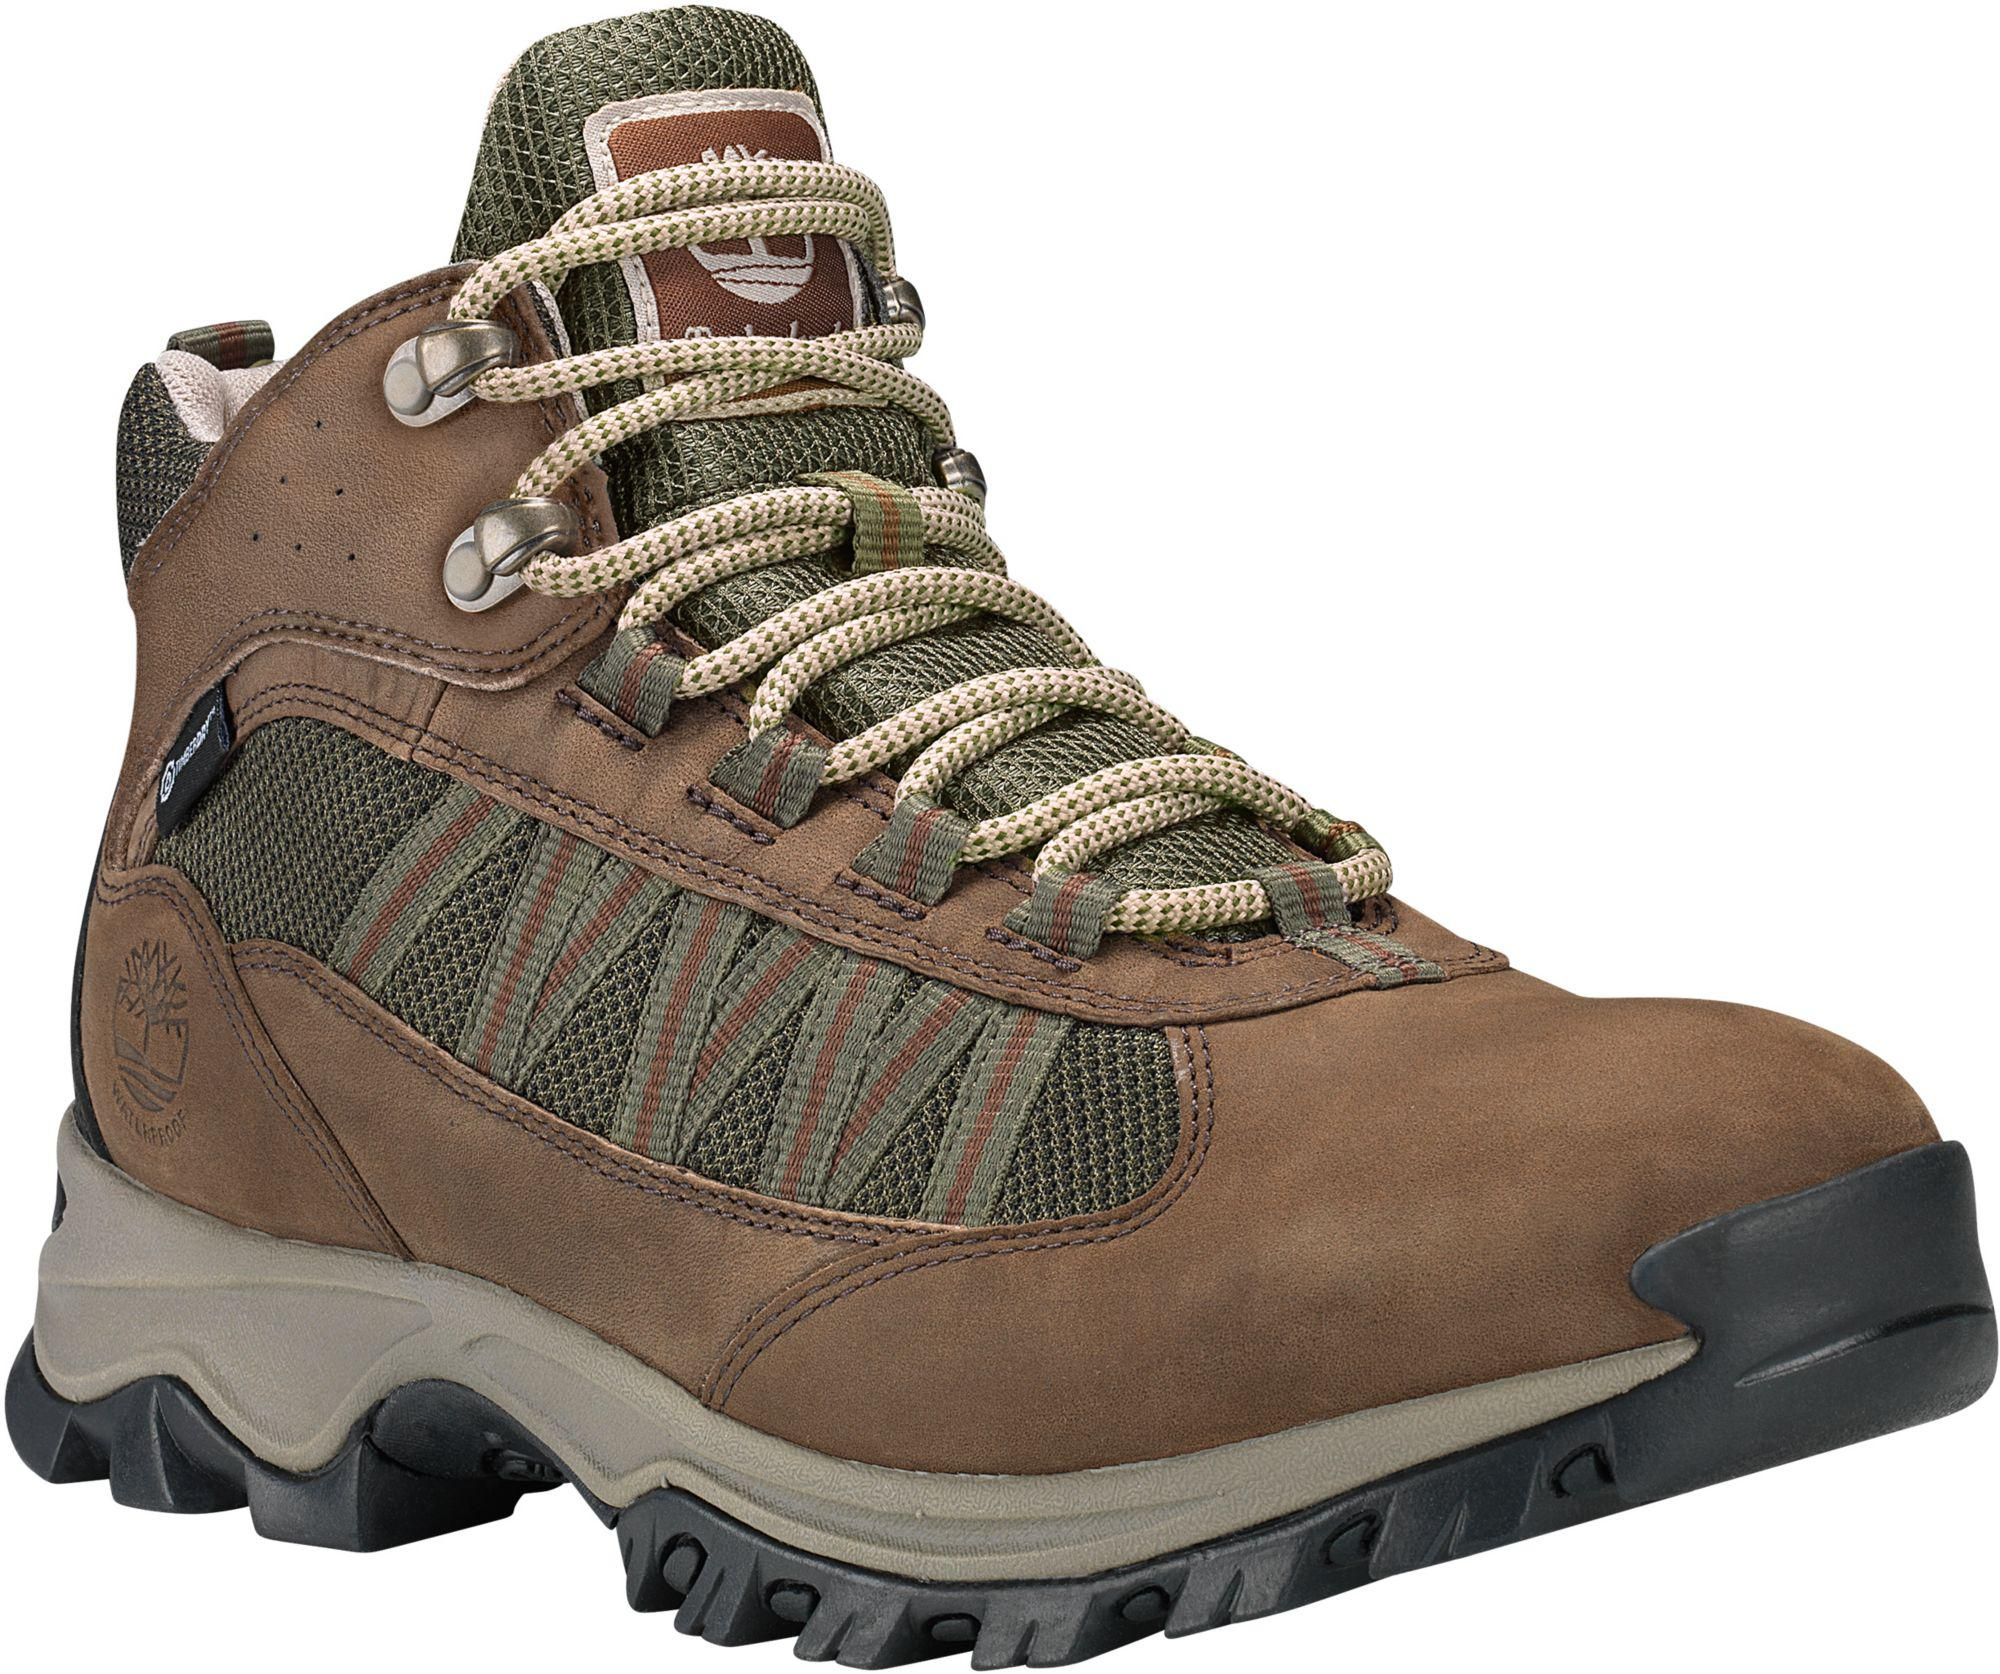 809a6eb12ce Timberland Brown Mt. Maddsen Lite Mid Waterproof Hiking Boots for men